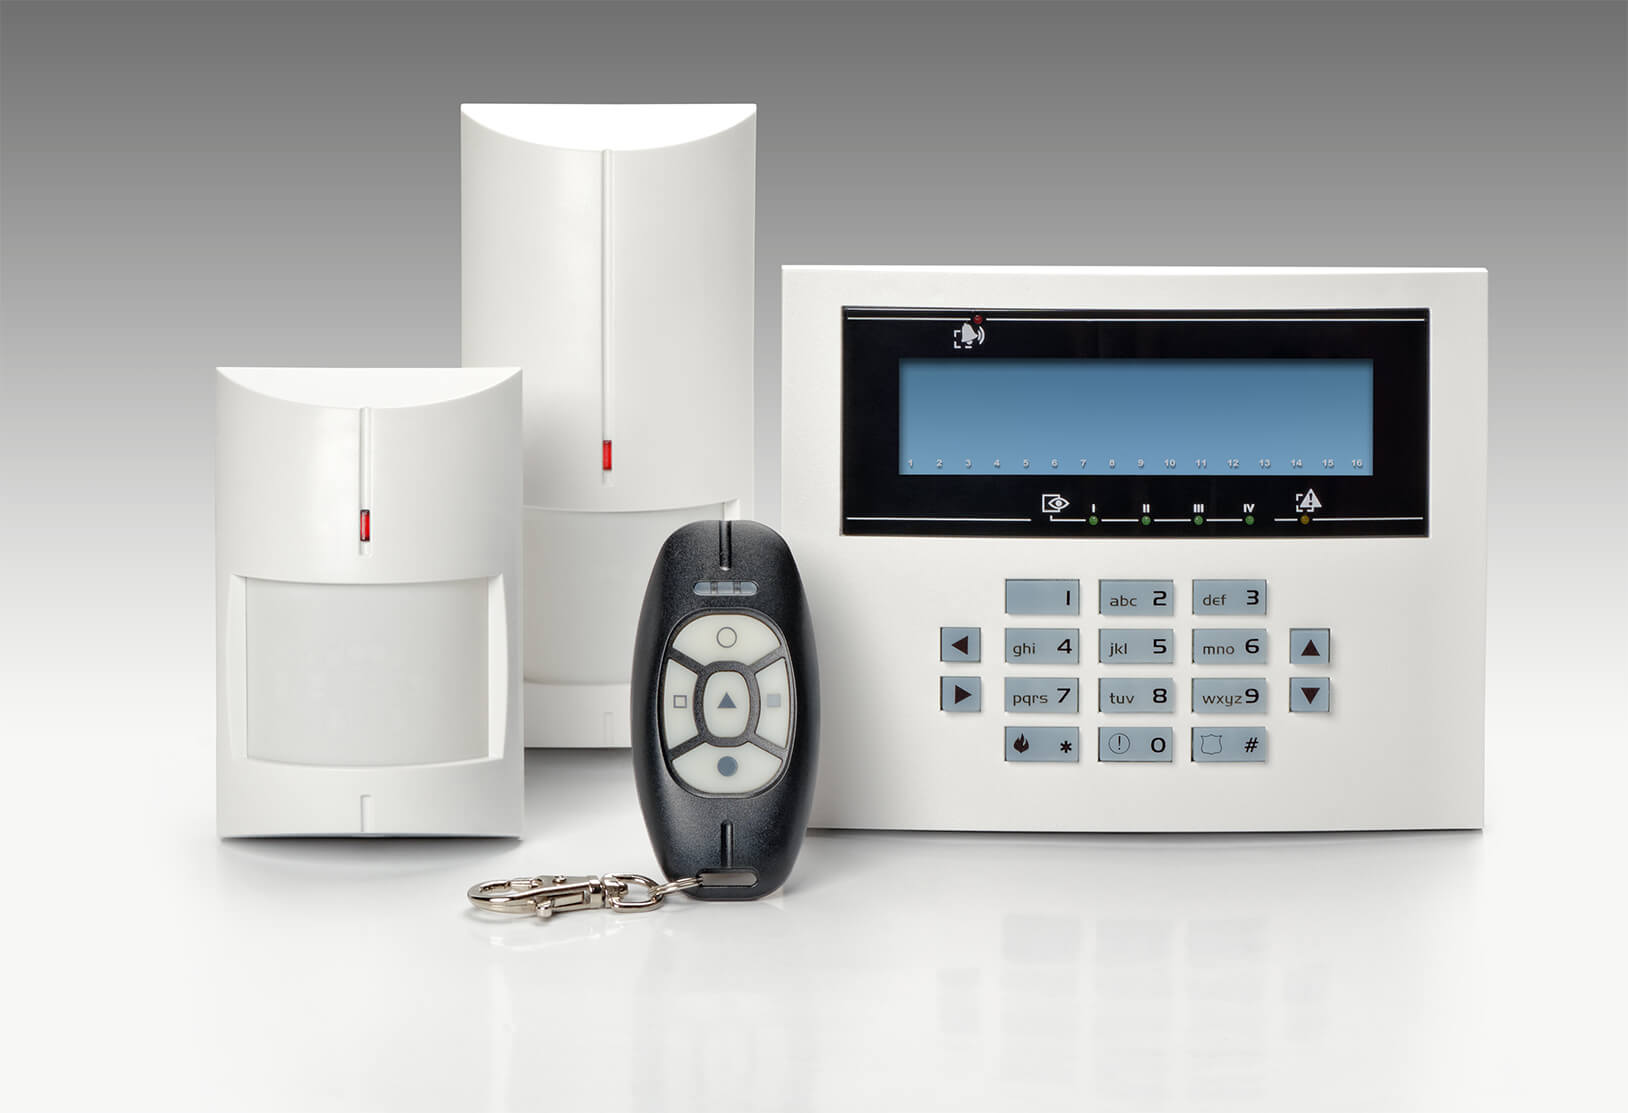 Business & Residential NSI / NACOSS Approved Burglar Alarms In Fulham W6 - Local Fulham W6 security company.Call 02078872244 - Dedicated to Safety & Security. Companies, shops and homes ..